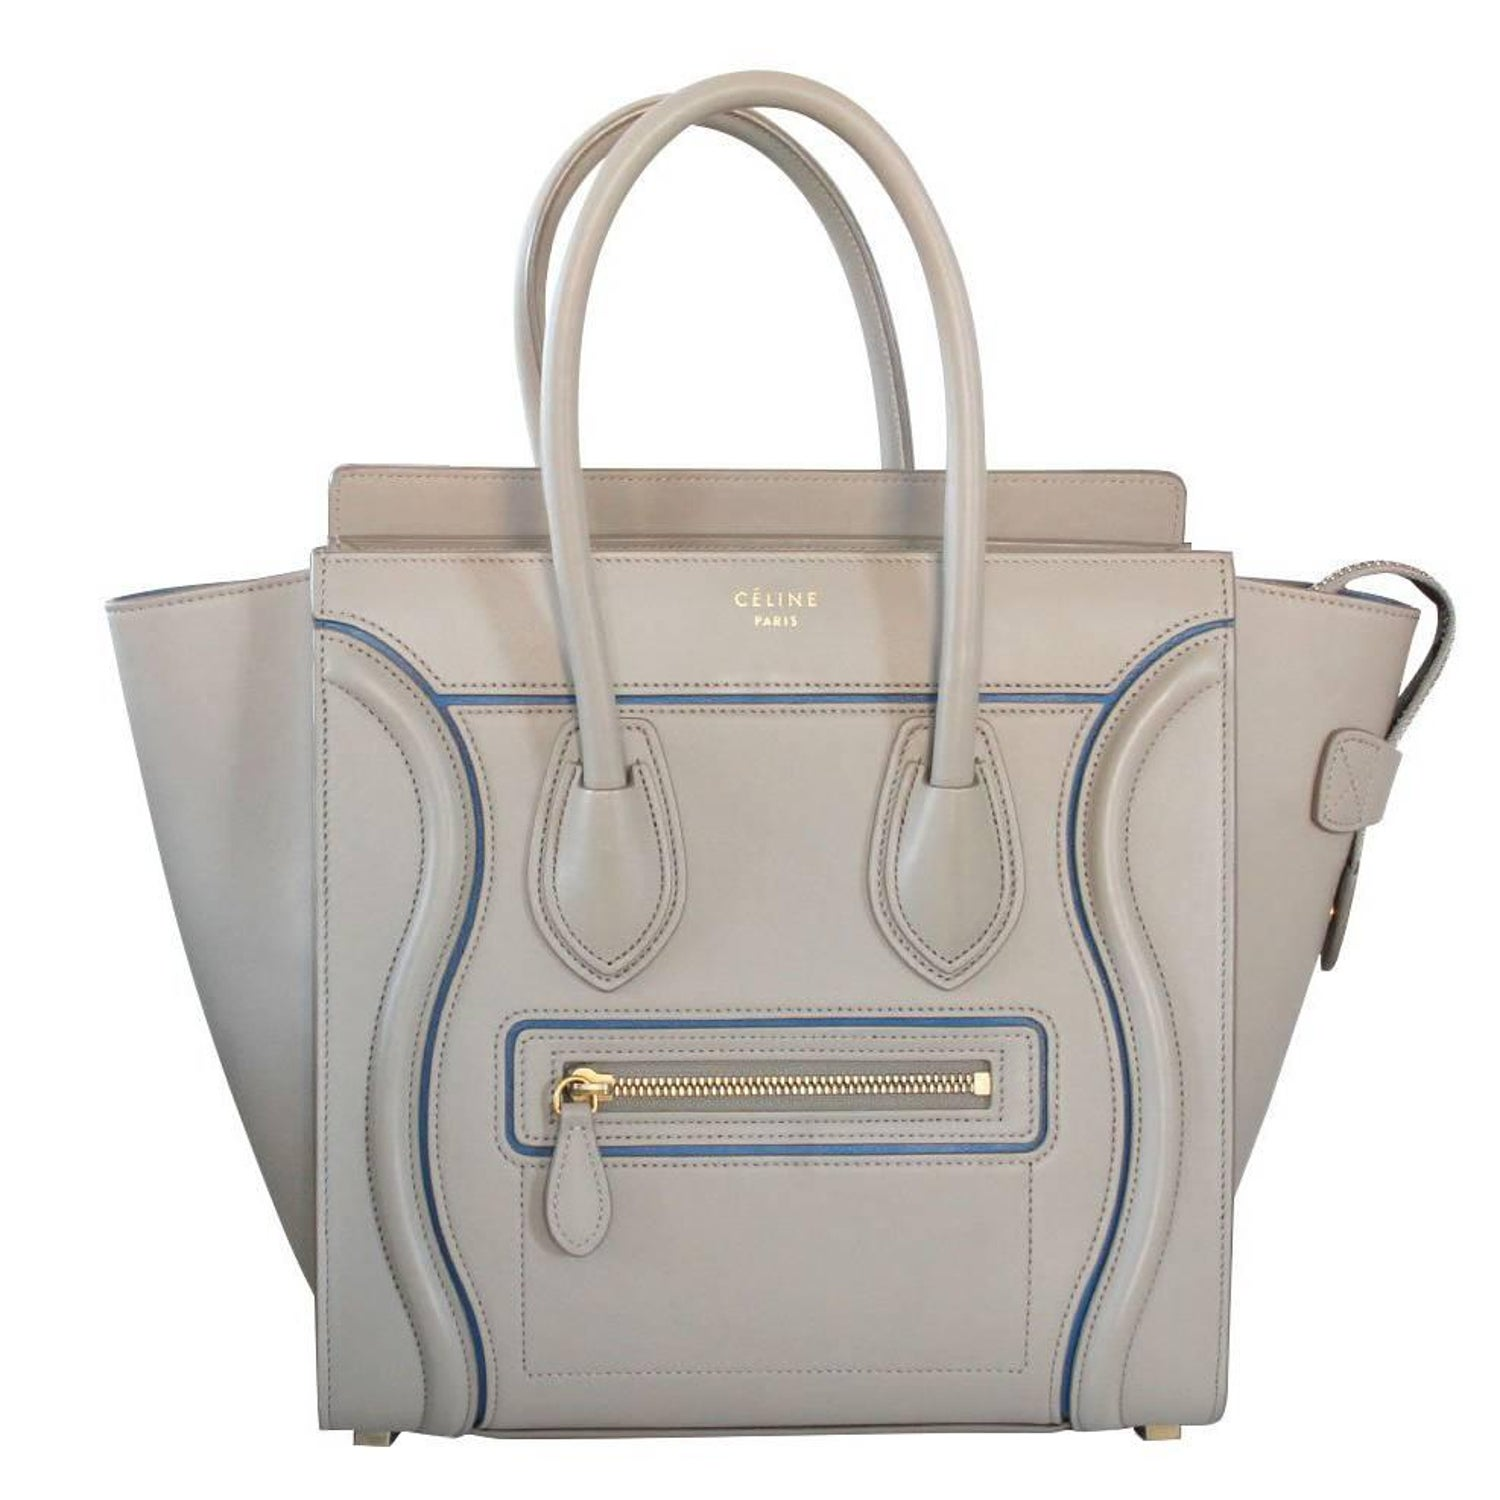 7108b5185 Celine Micro Luggage Light Taupe Calfskin Tote Handbag with Blue Piping at  1stdibs